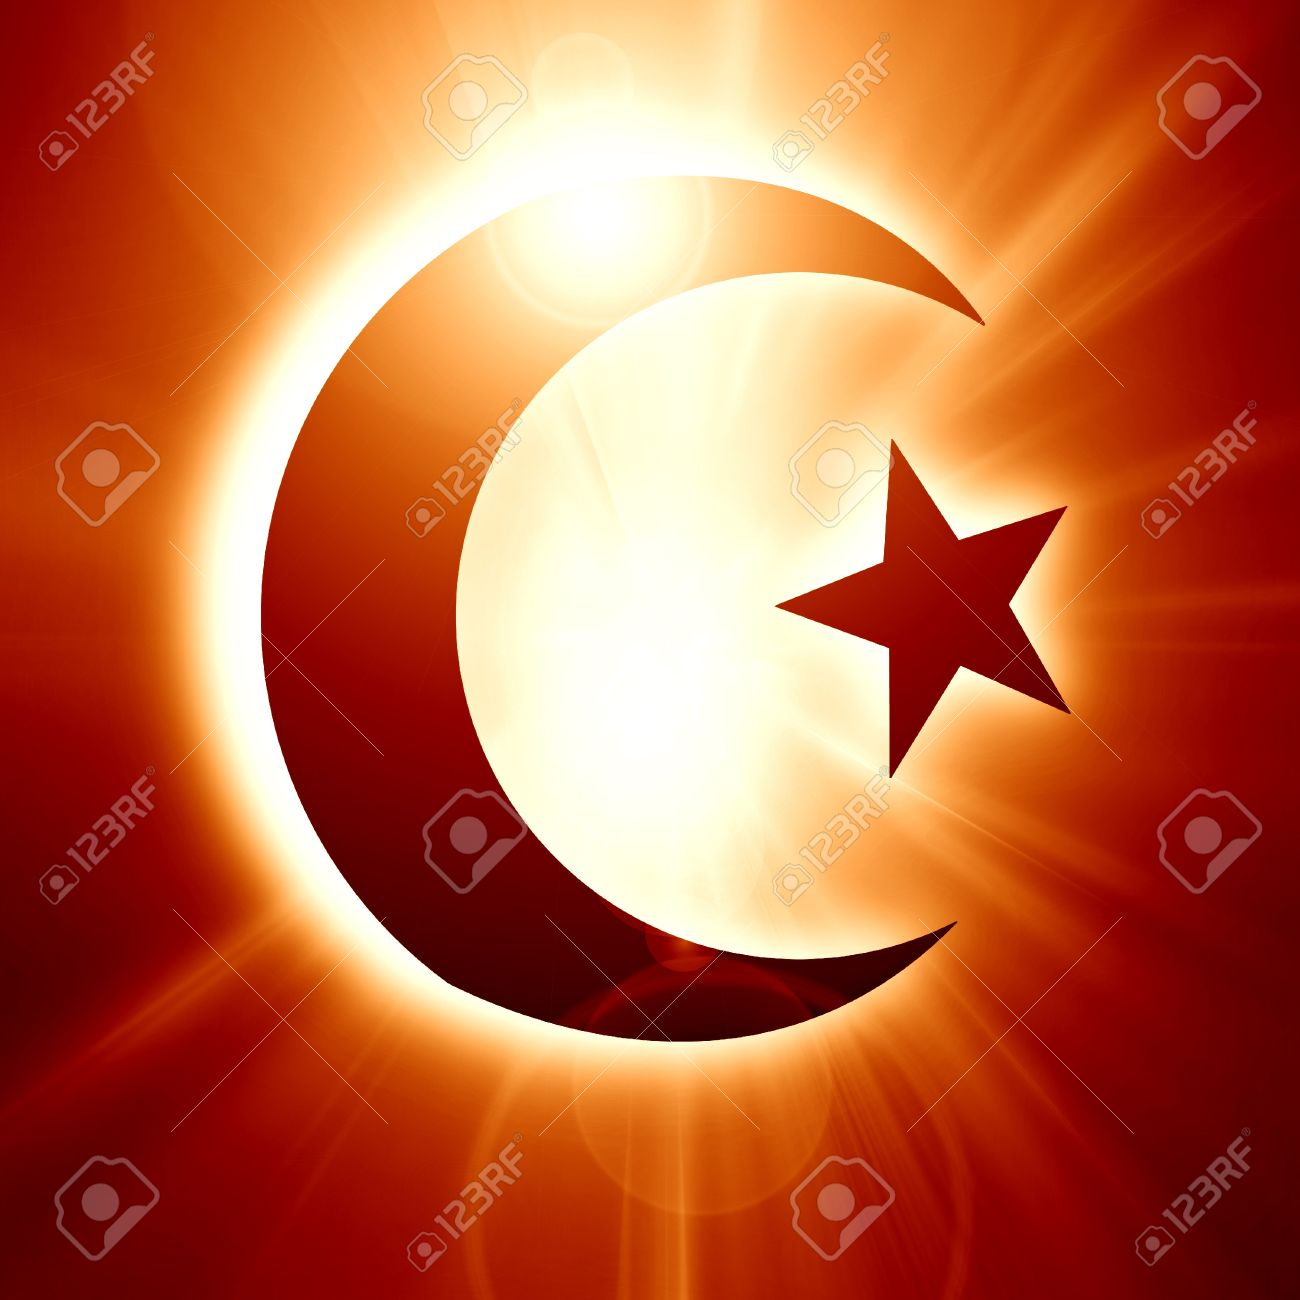 The Symbol Of Islam With A Crescent And Star Stock Photo Picture